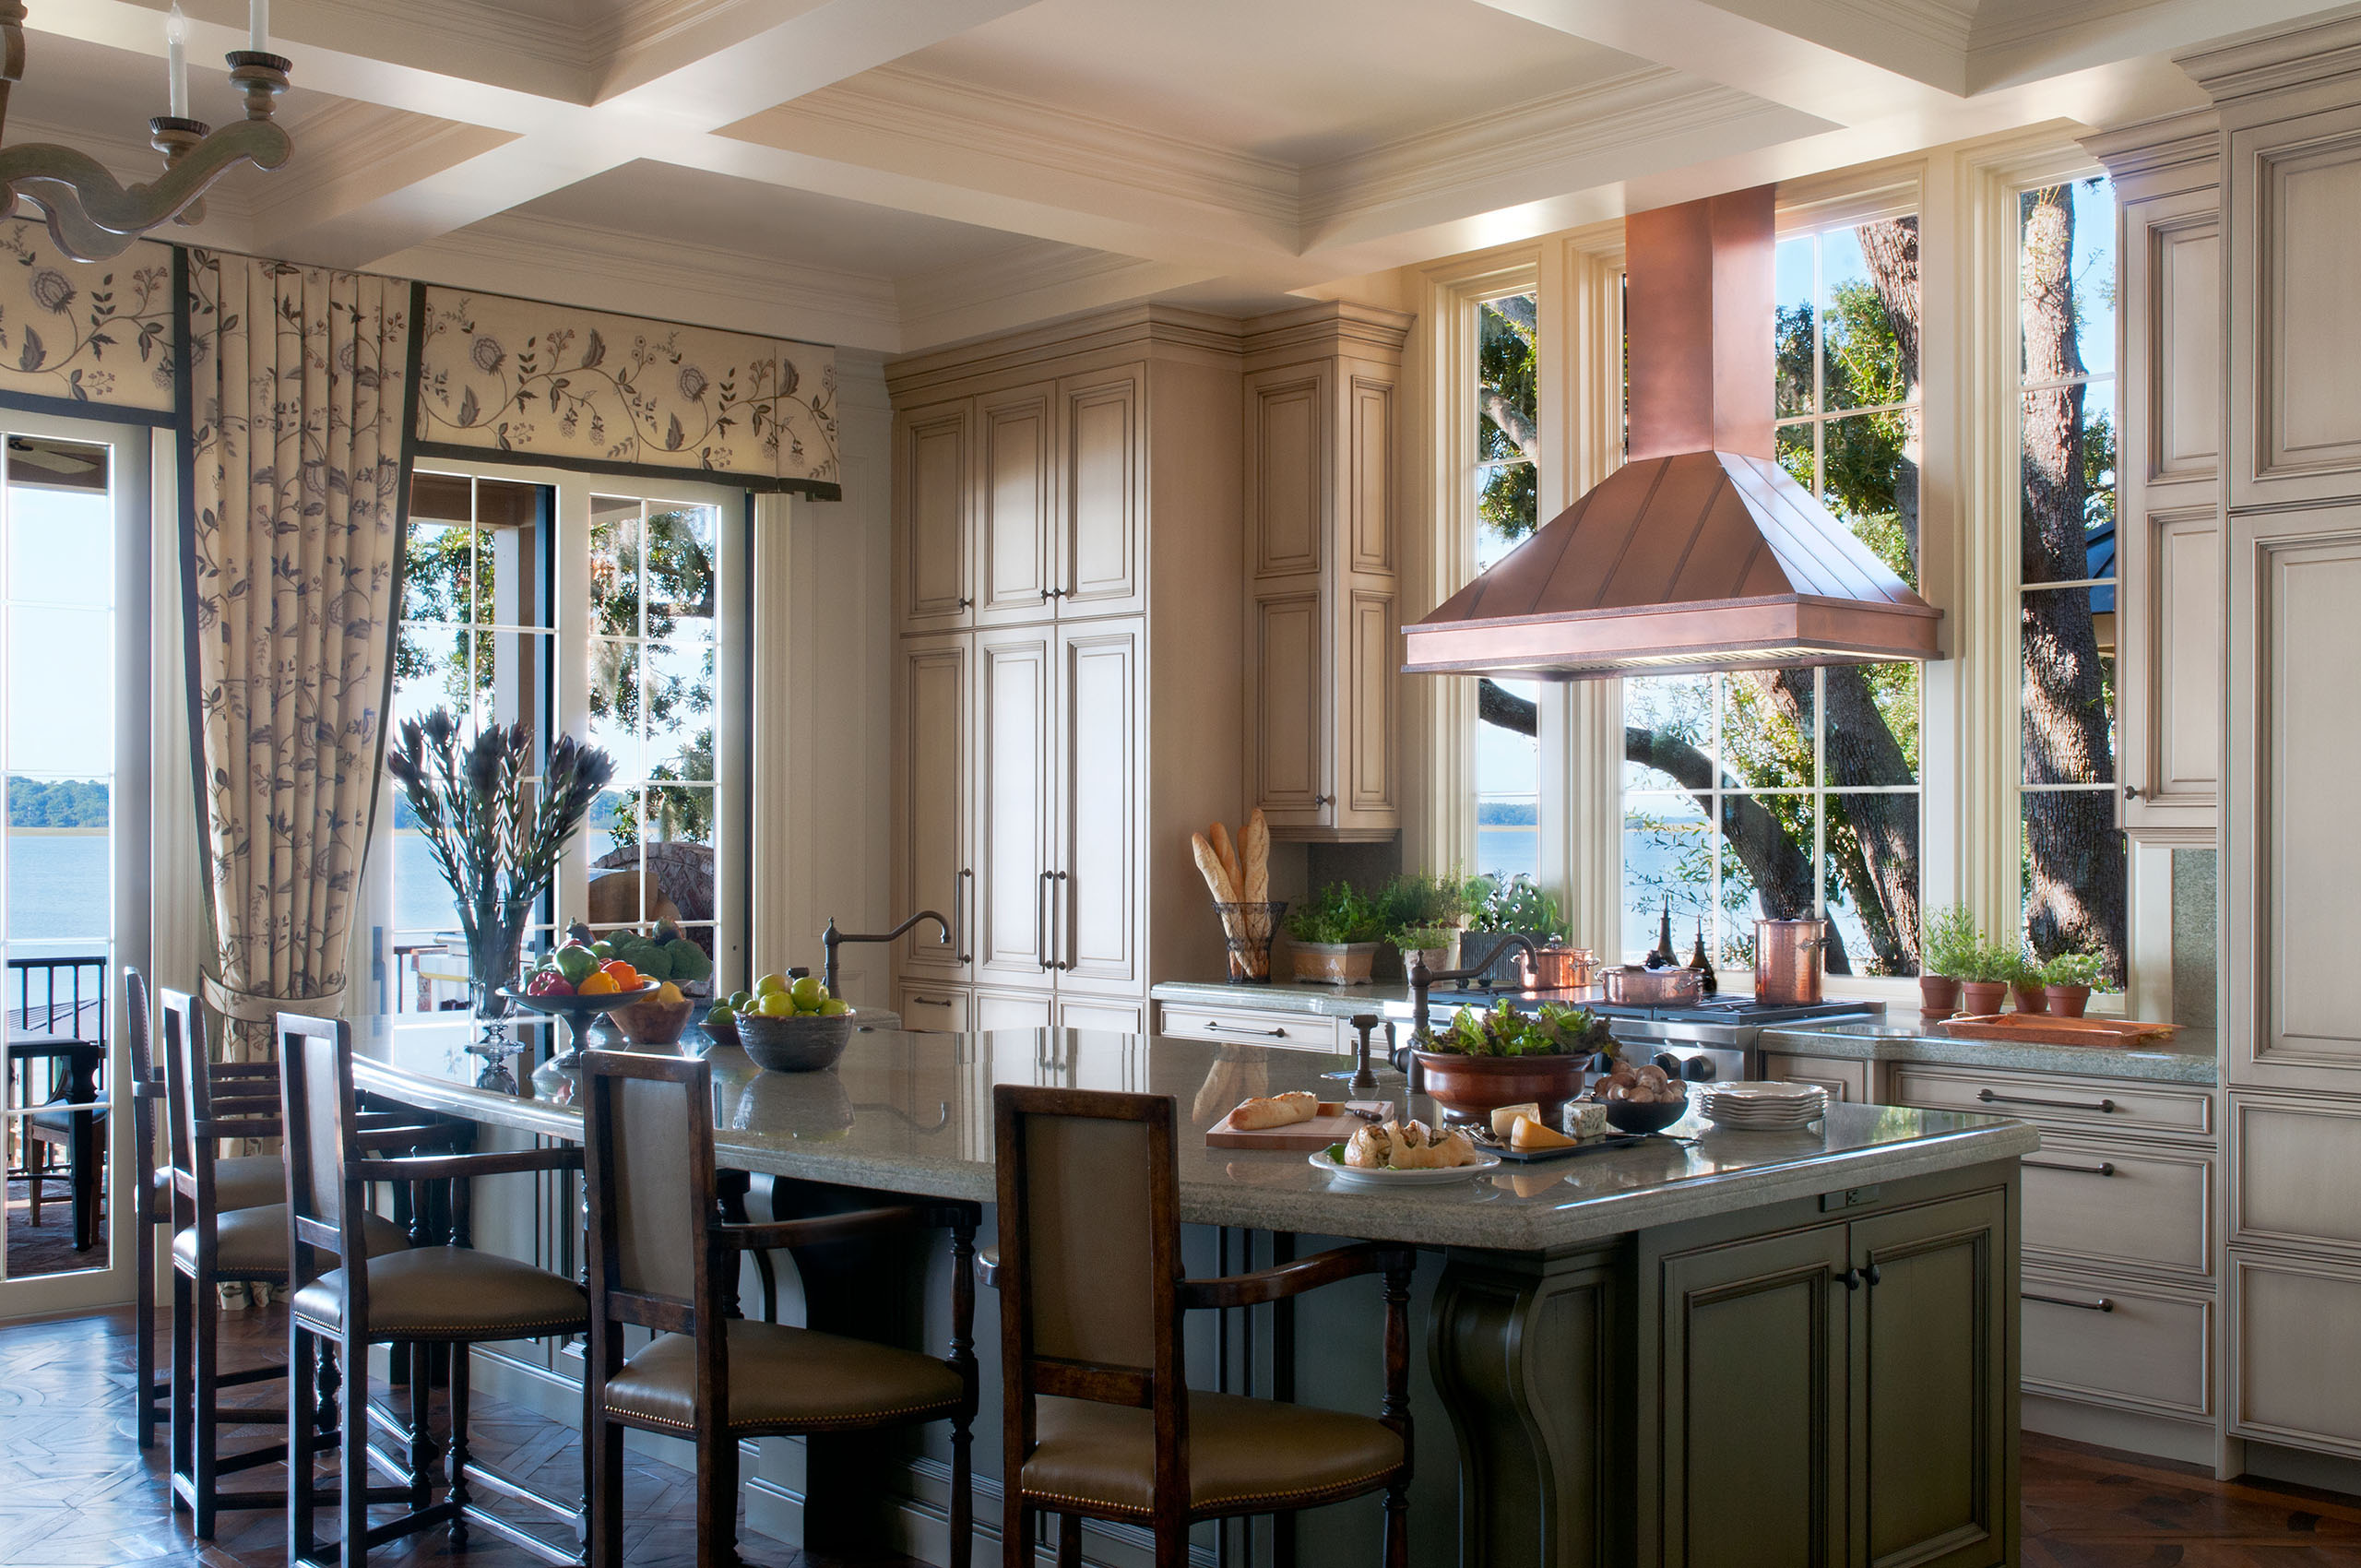 South Carolina Residence Kitchen